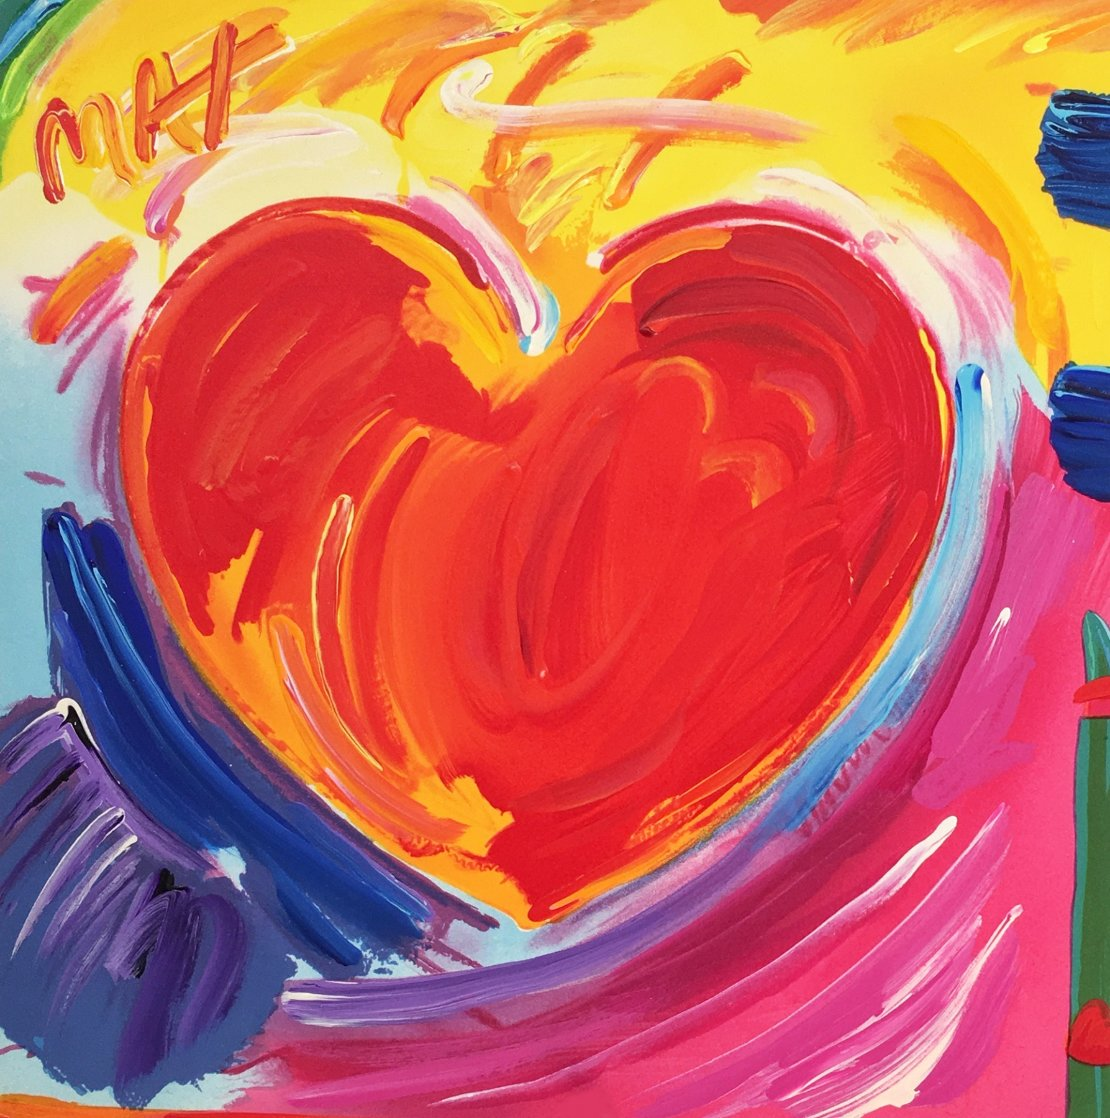 Love Heart Unique 1989 11x11 Works on Paper (not prints) by Peter Max